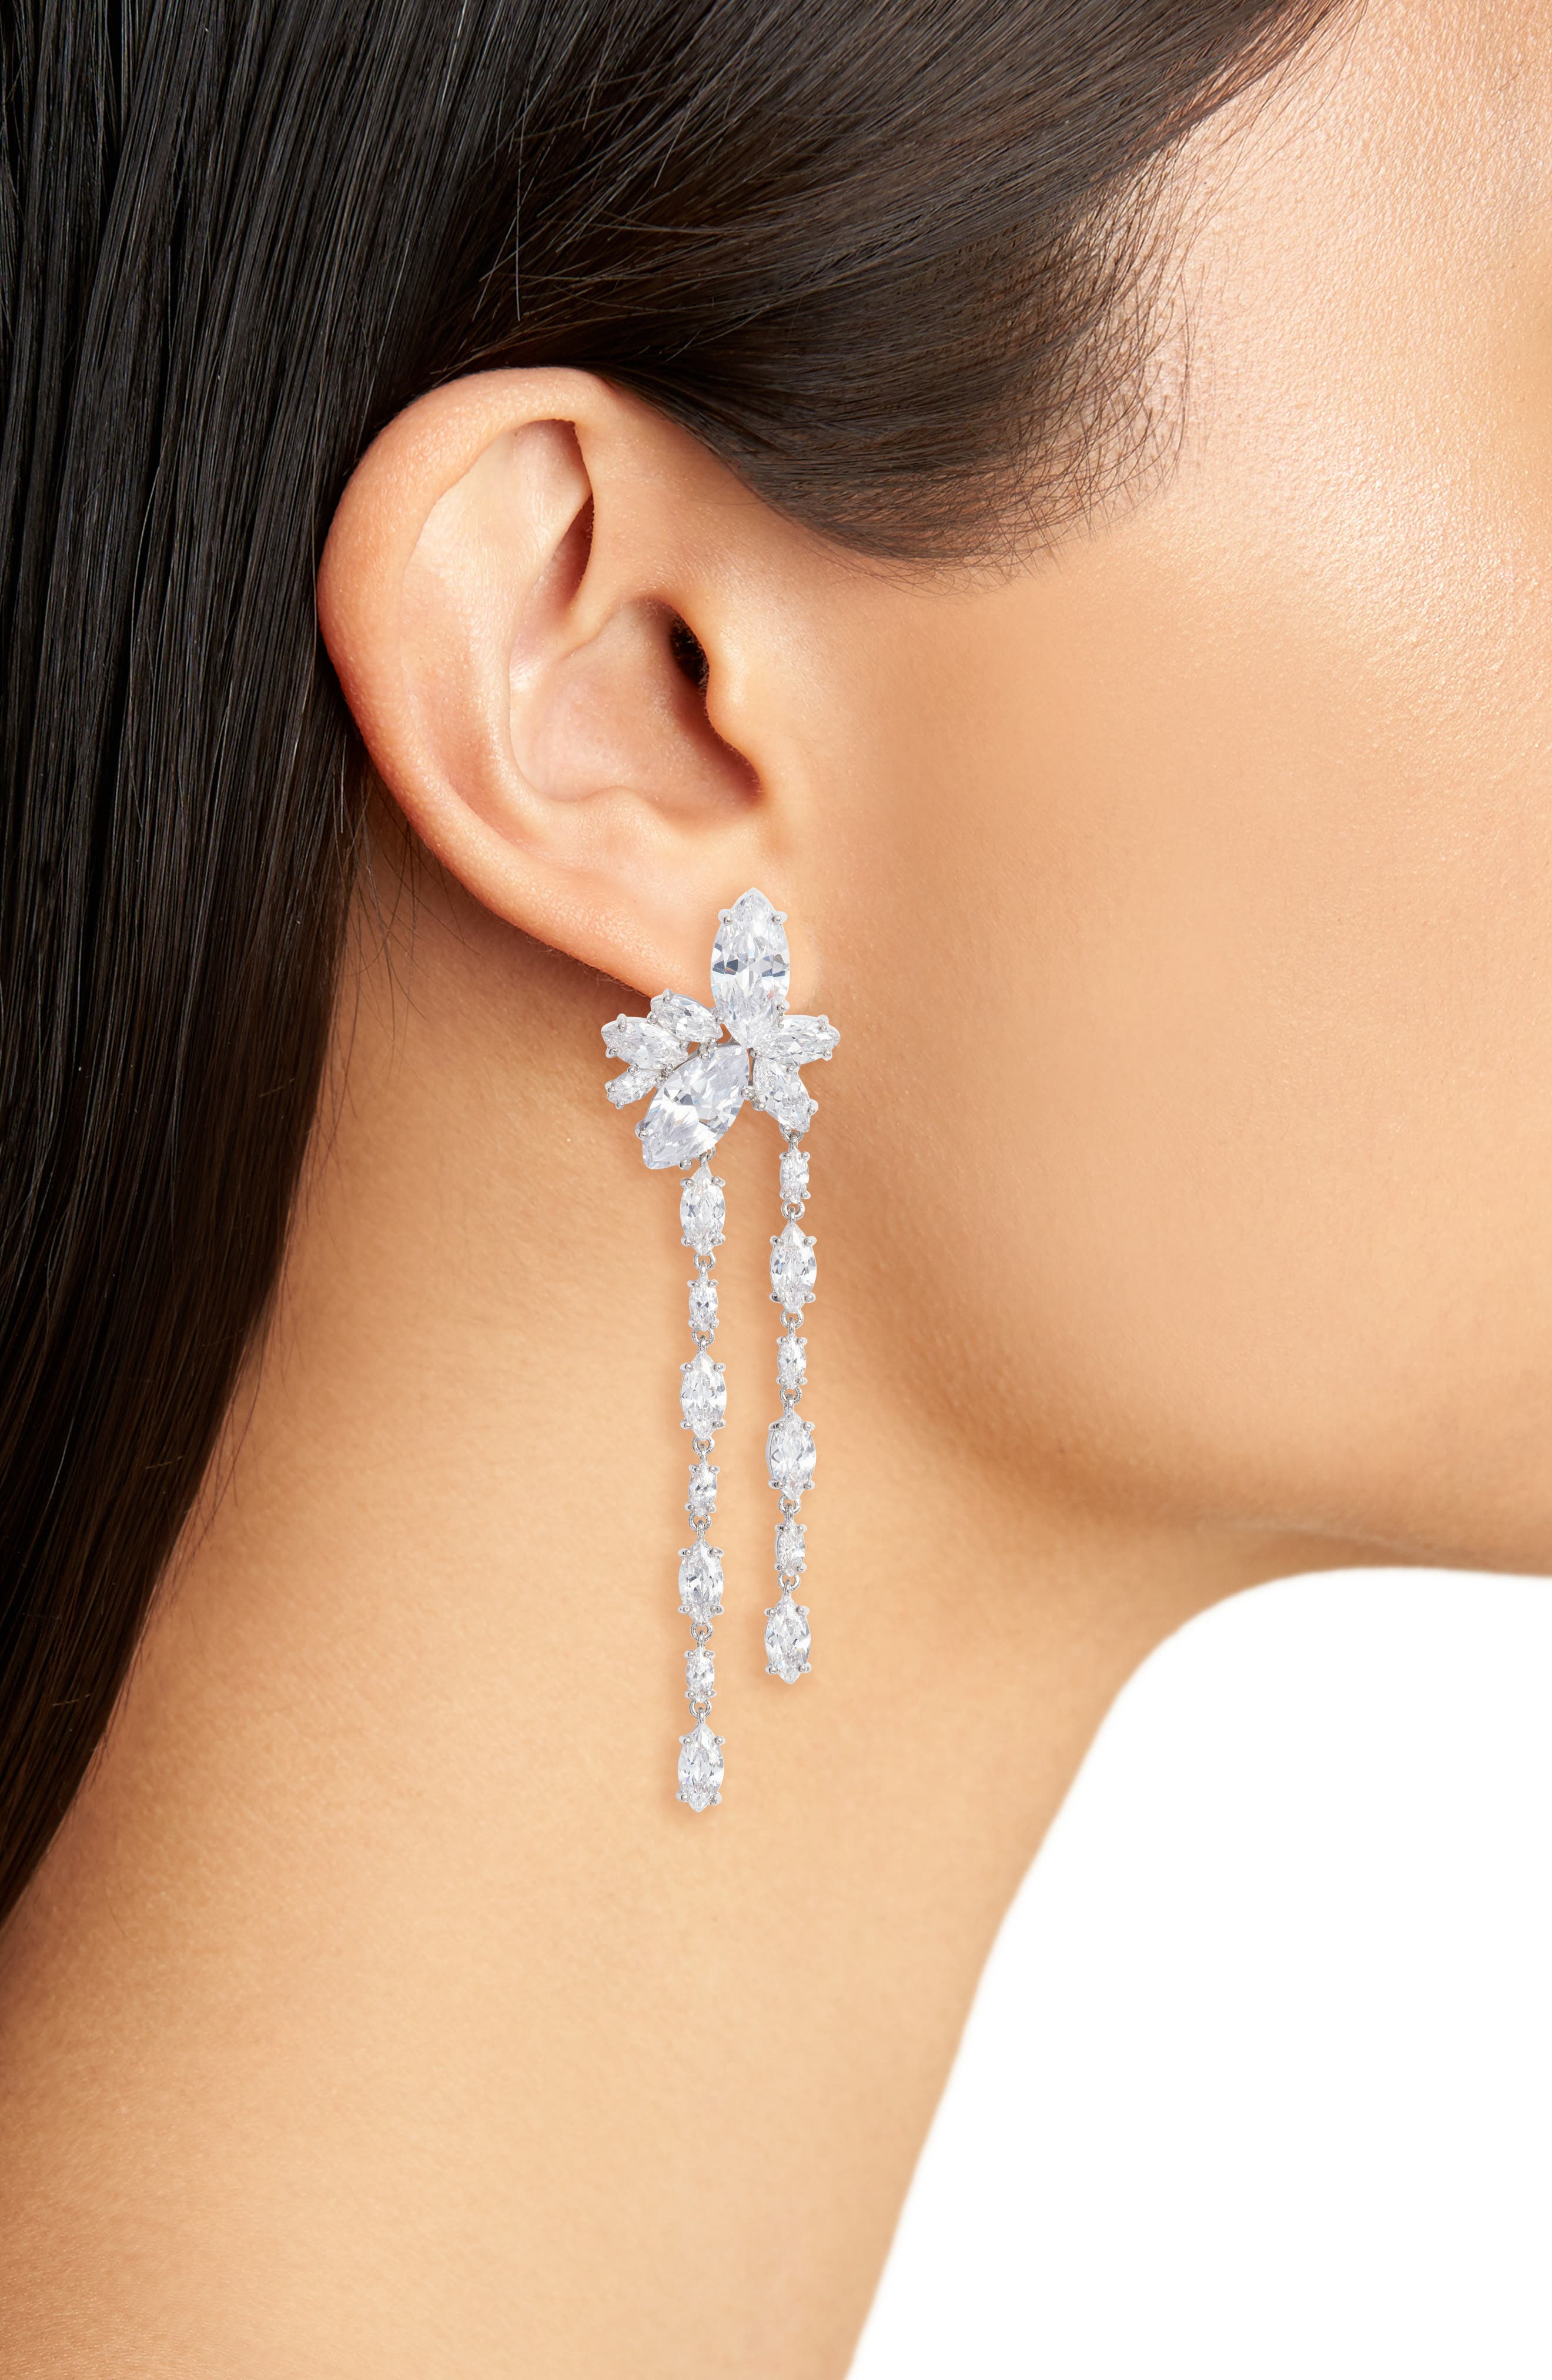 Floral Stone Cluster Drop Earrings,                             Alternate thumbnail 2, color,                             SILVER/ WHITE CZ